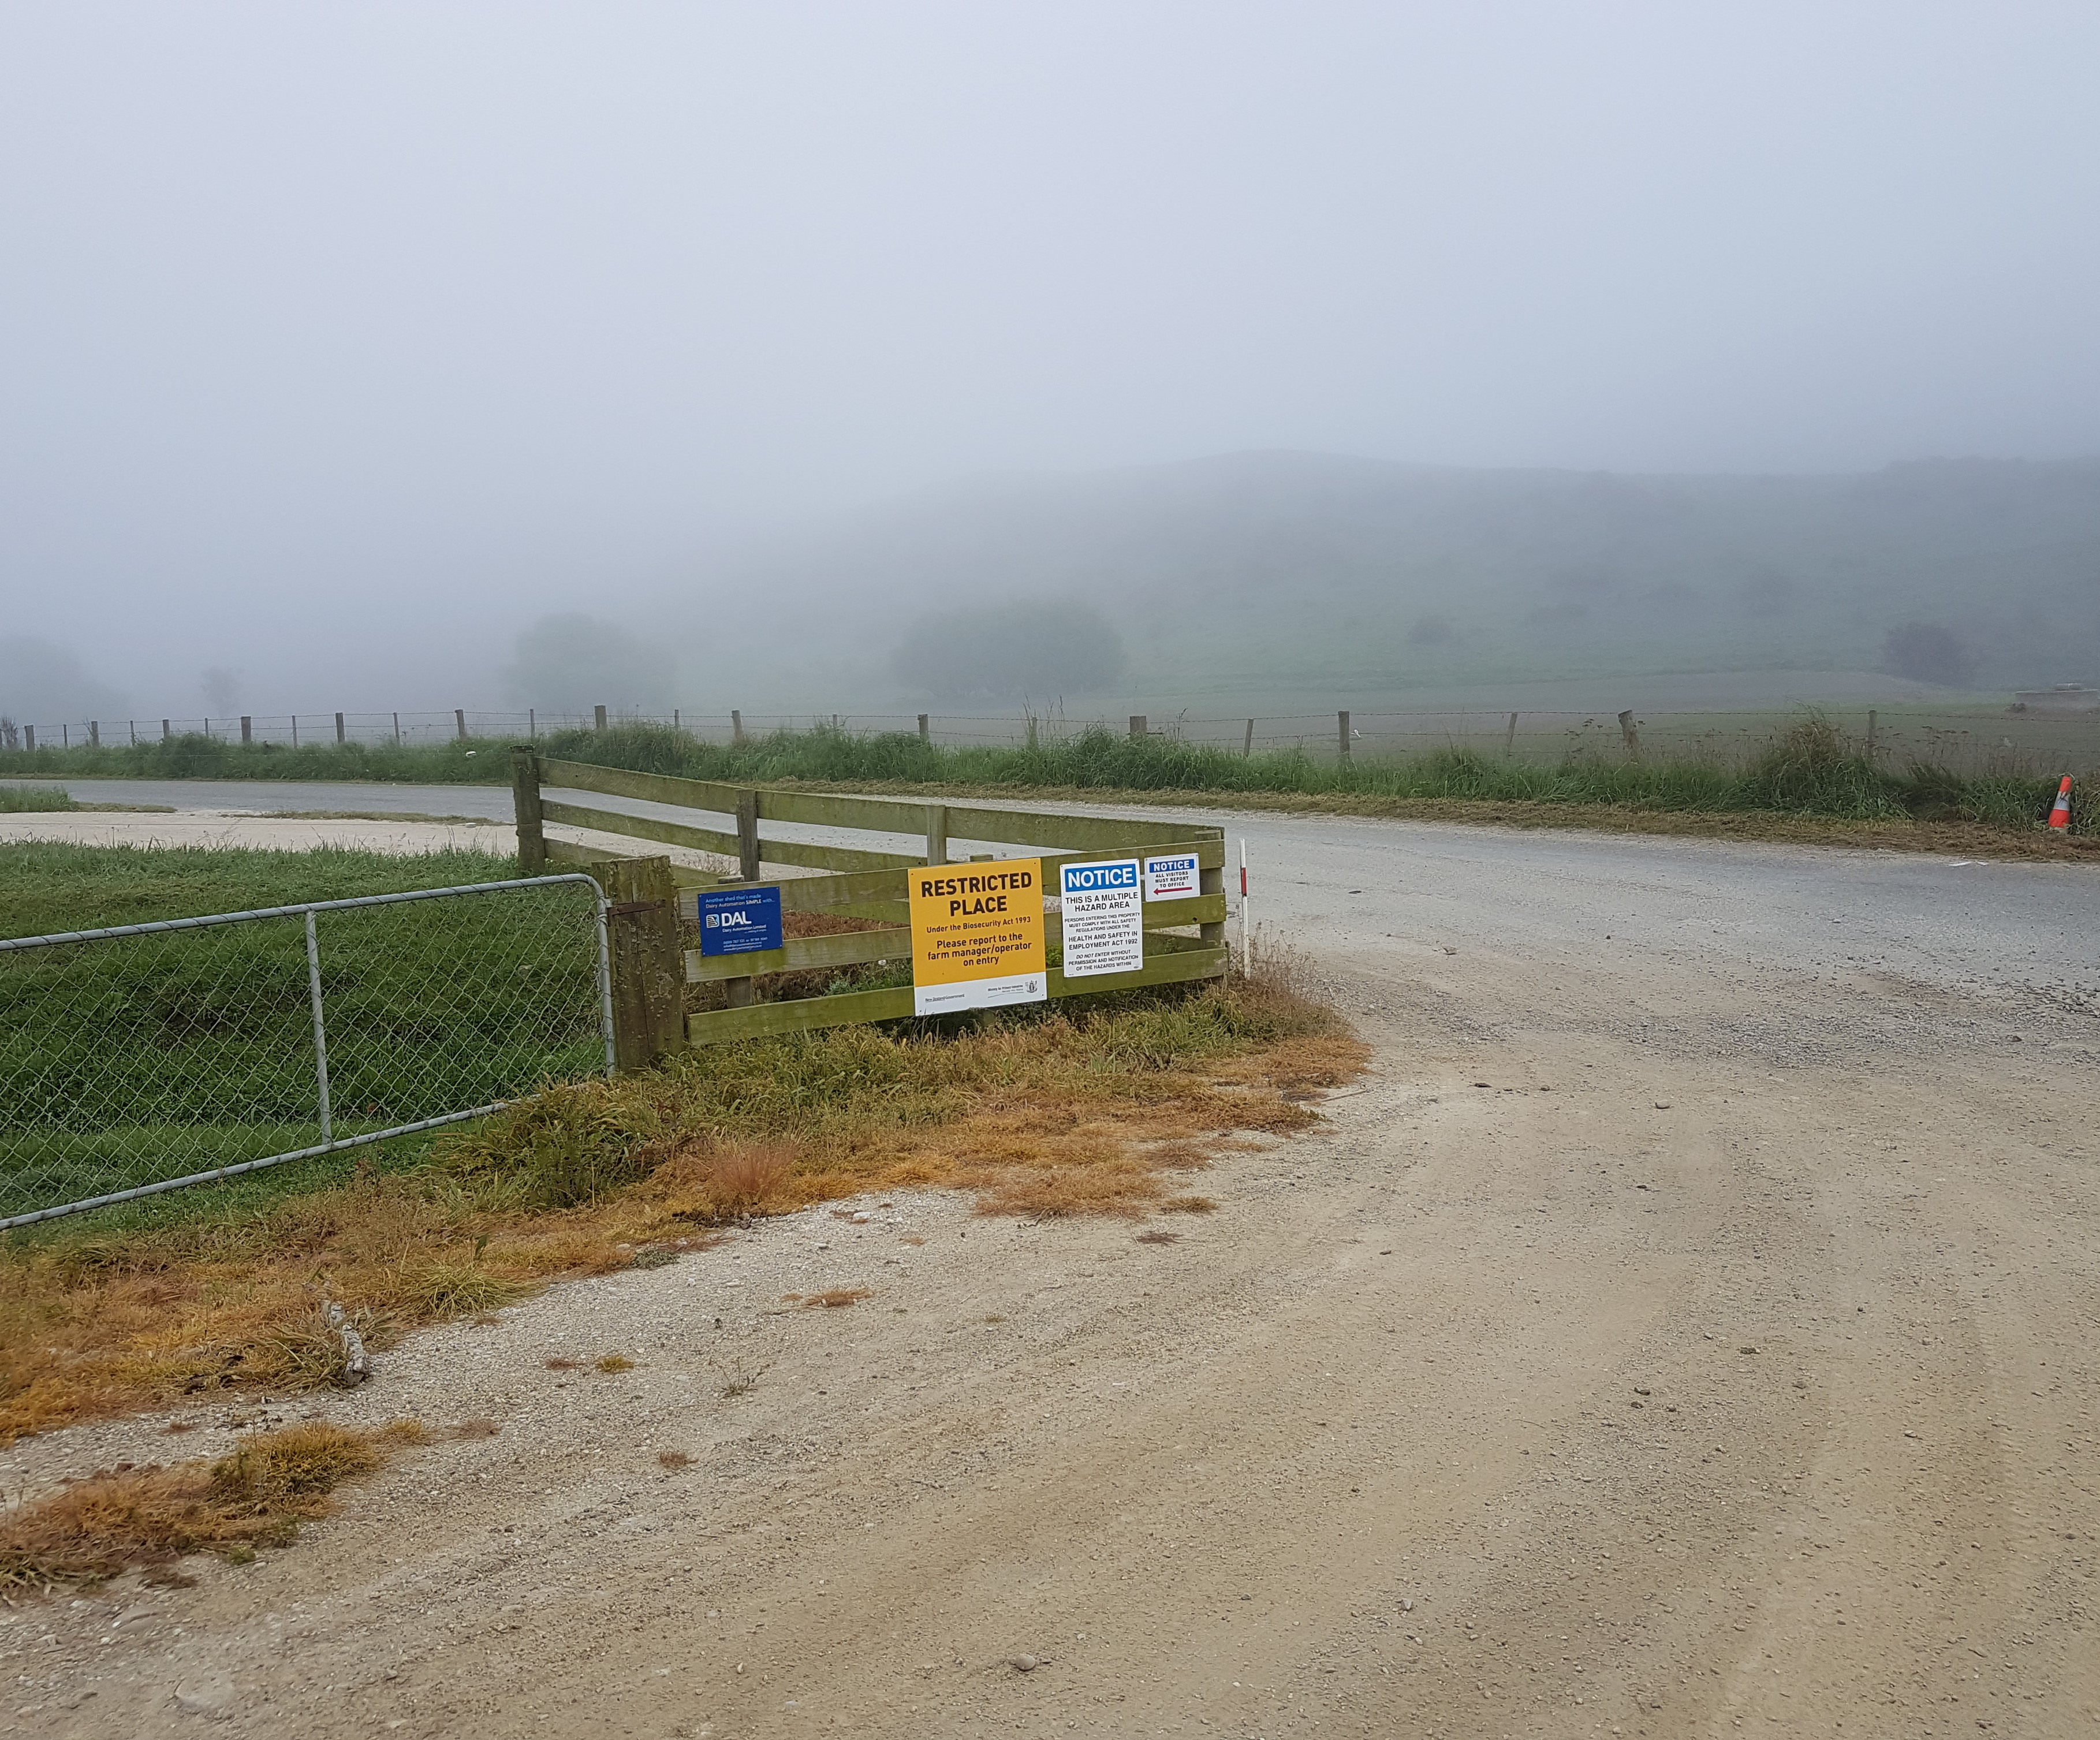 Restricted Place notice on farm gateway